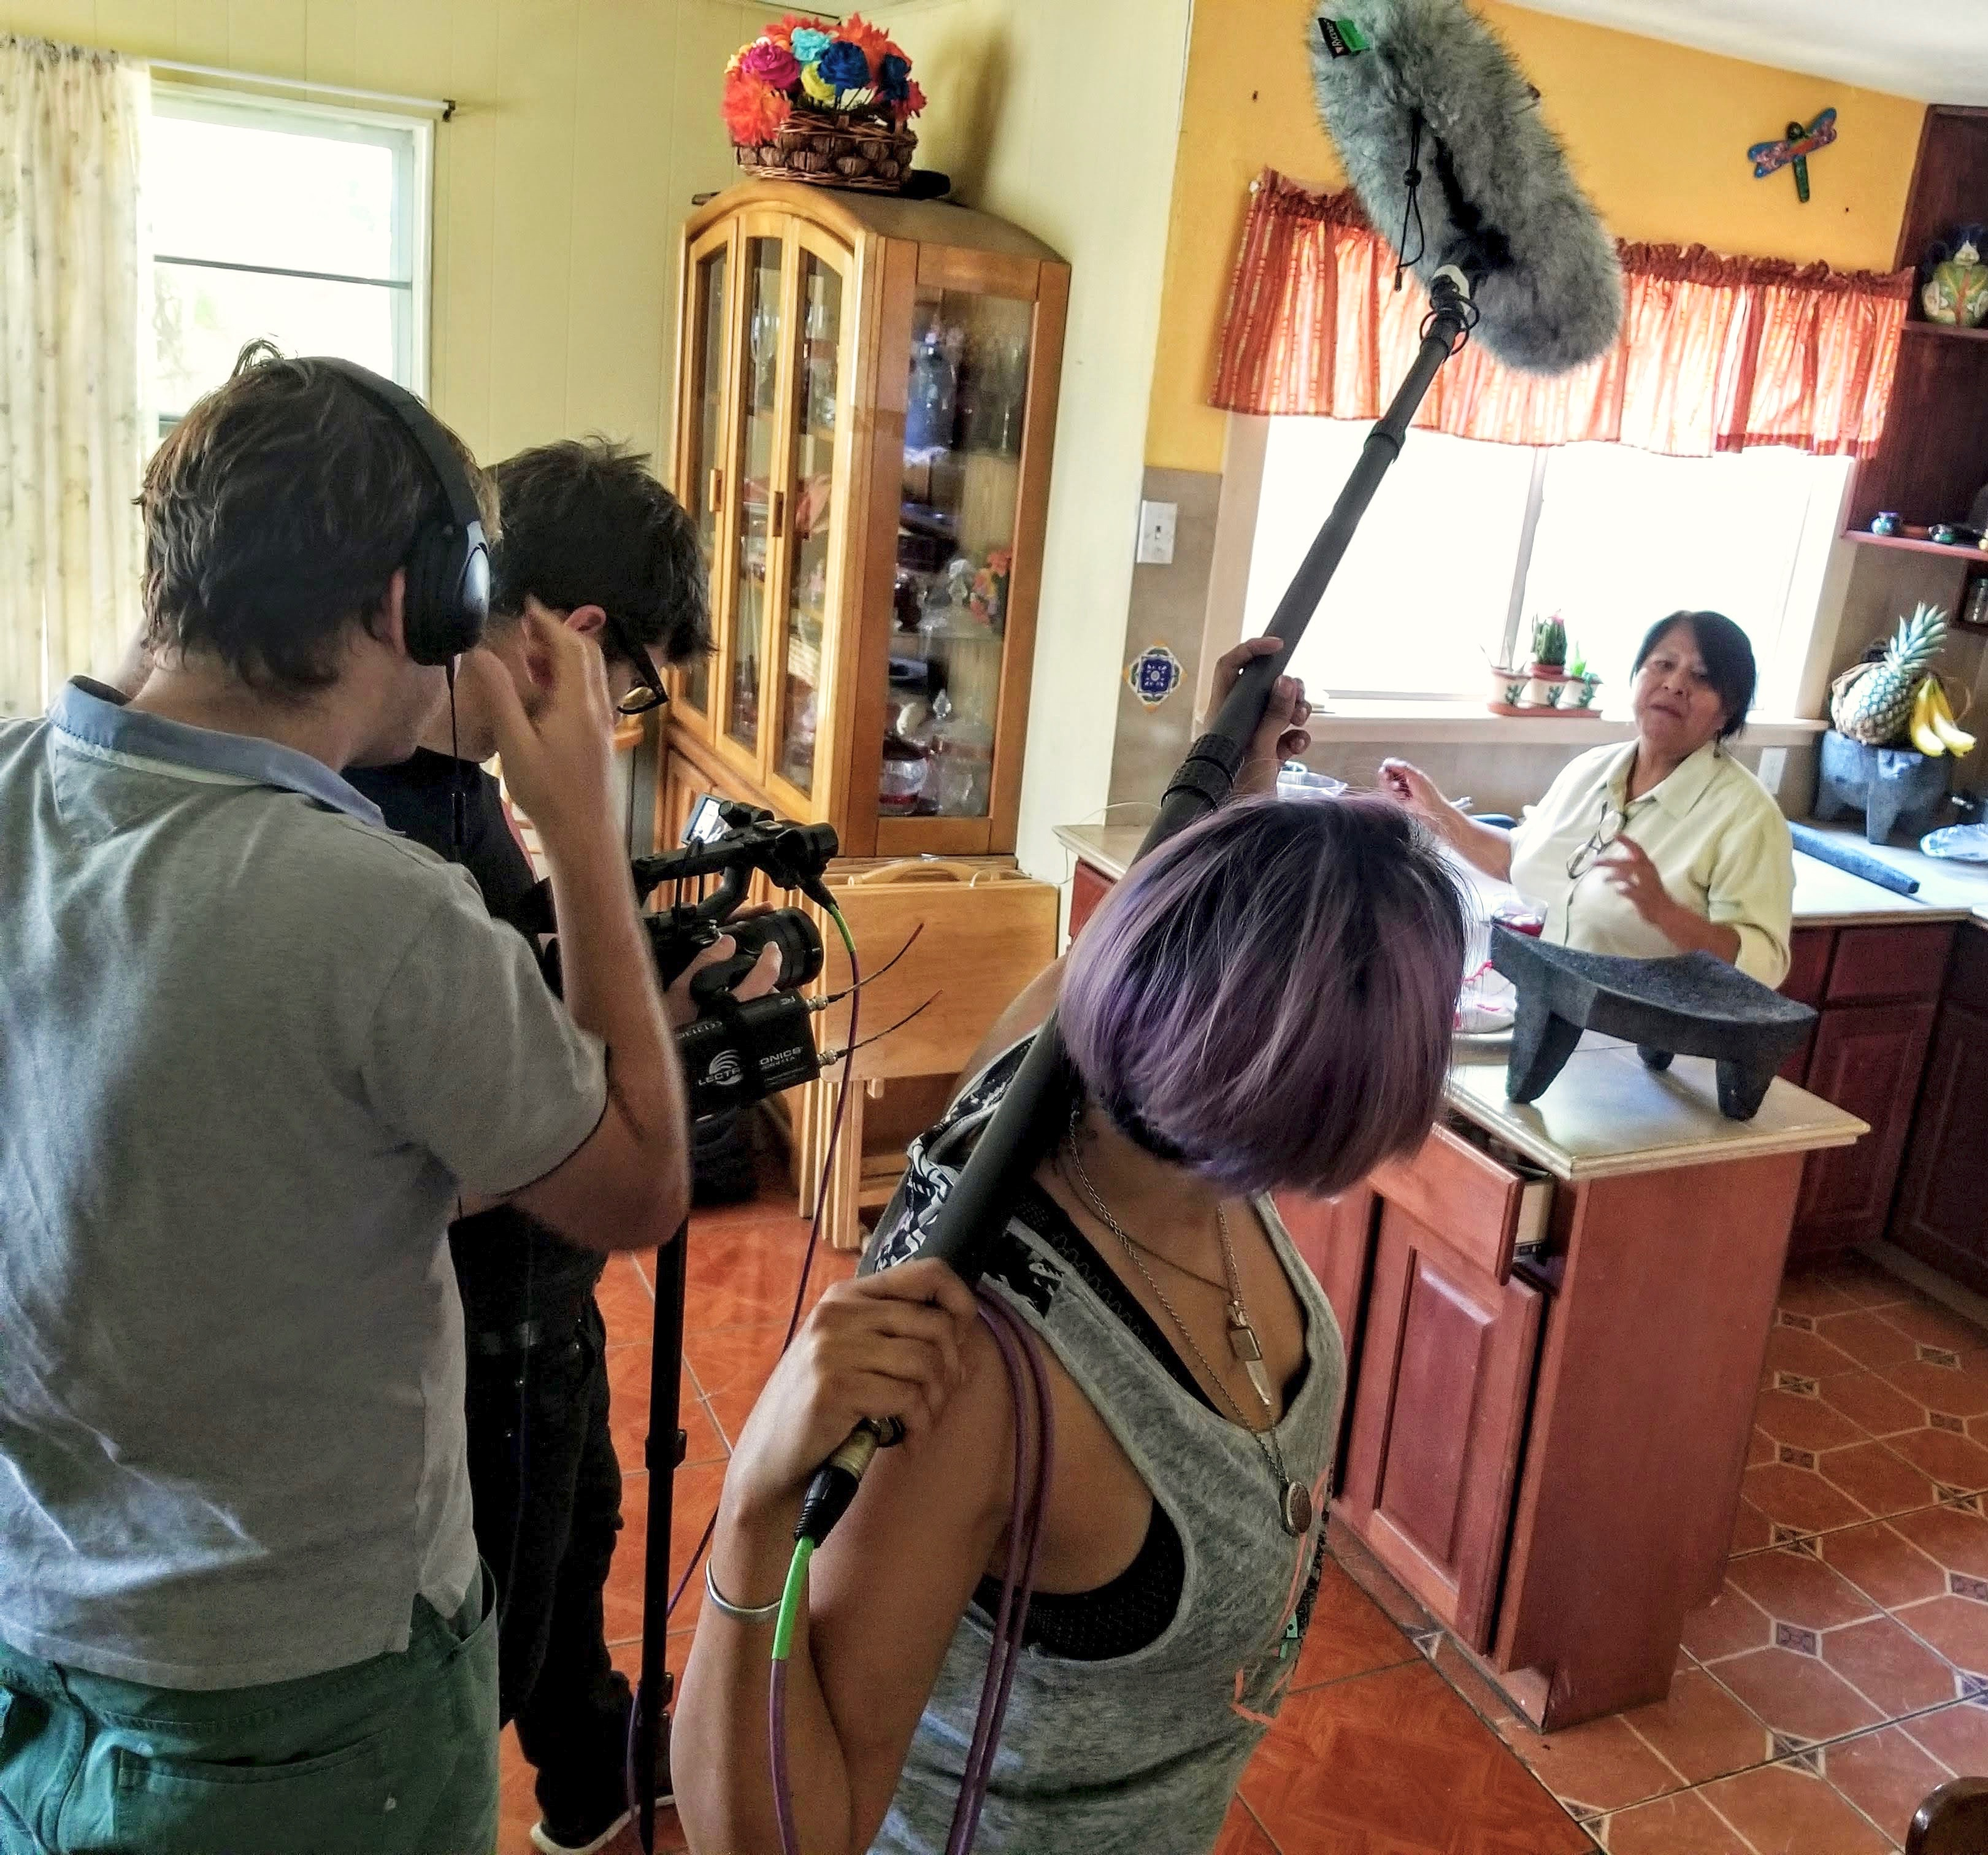 Rosalia Vargas in new food documentary